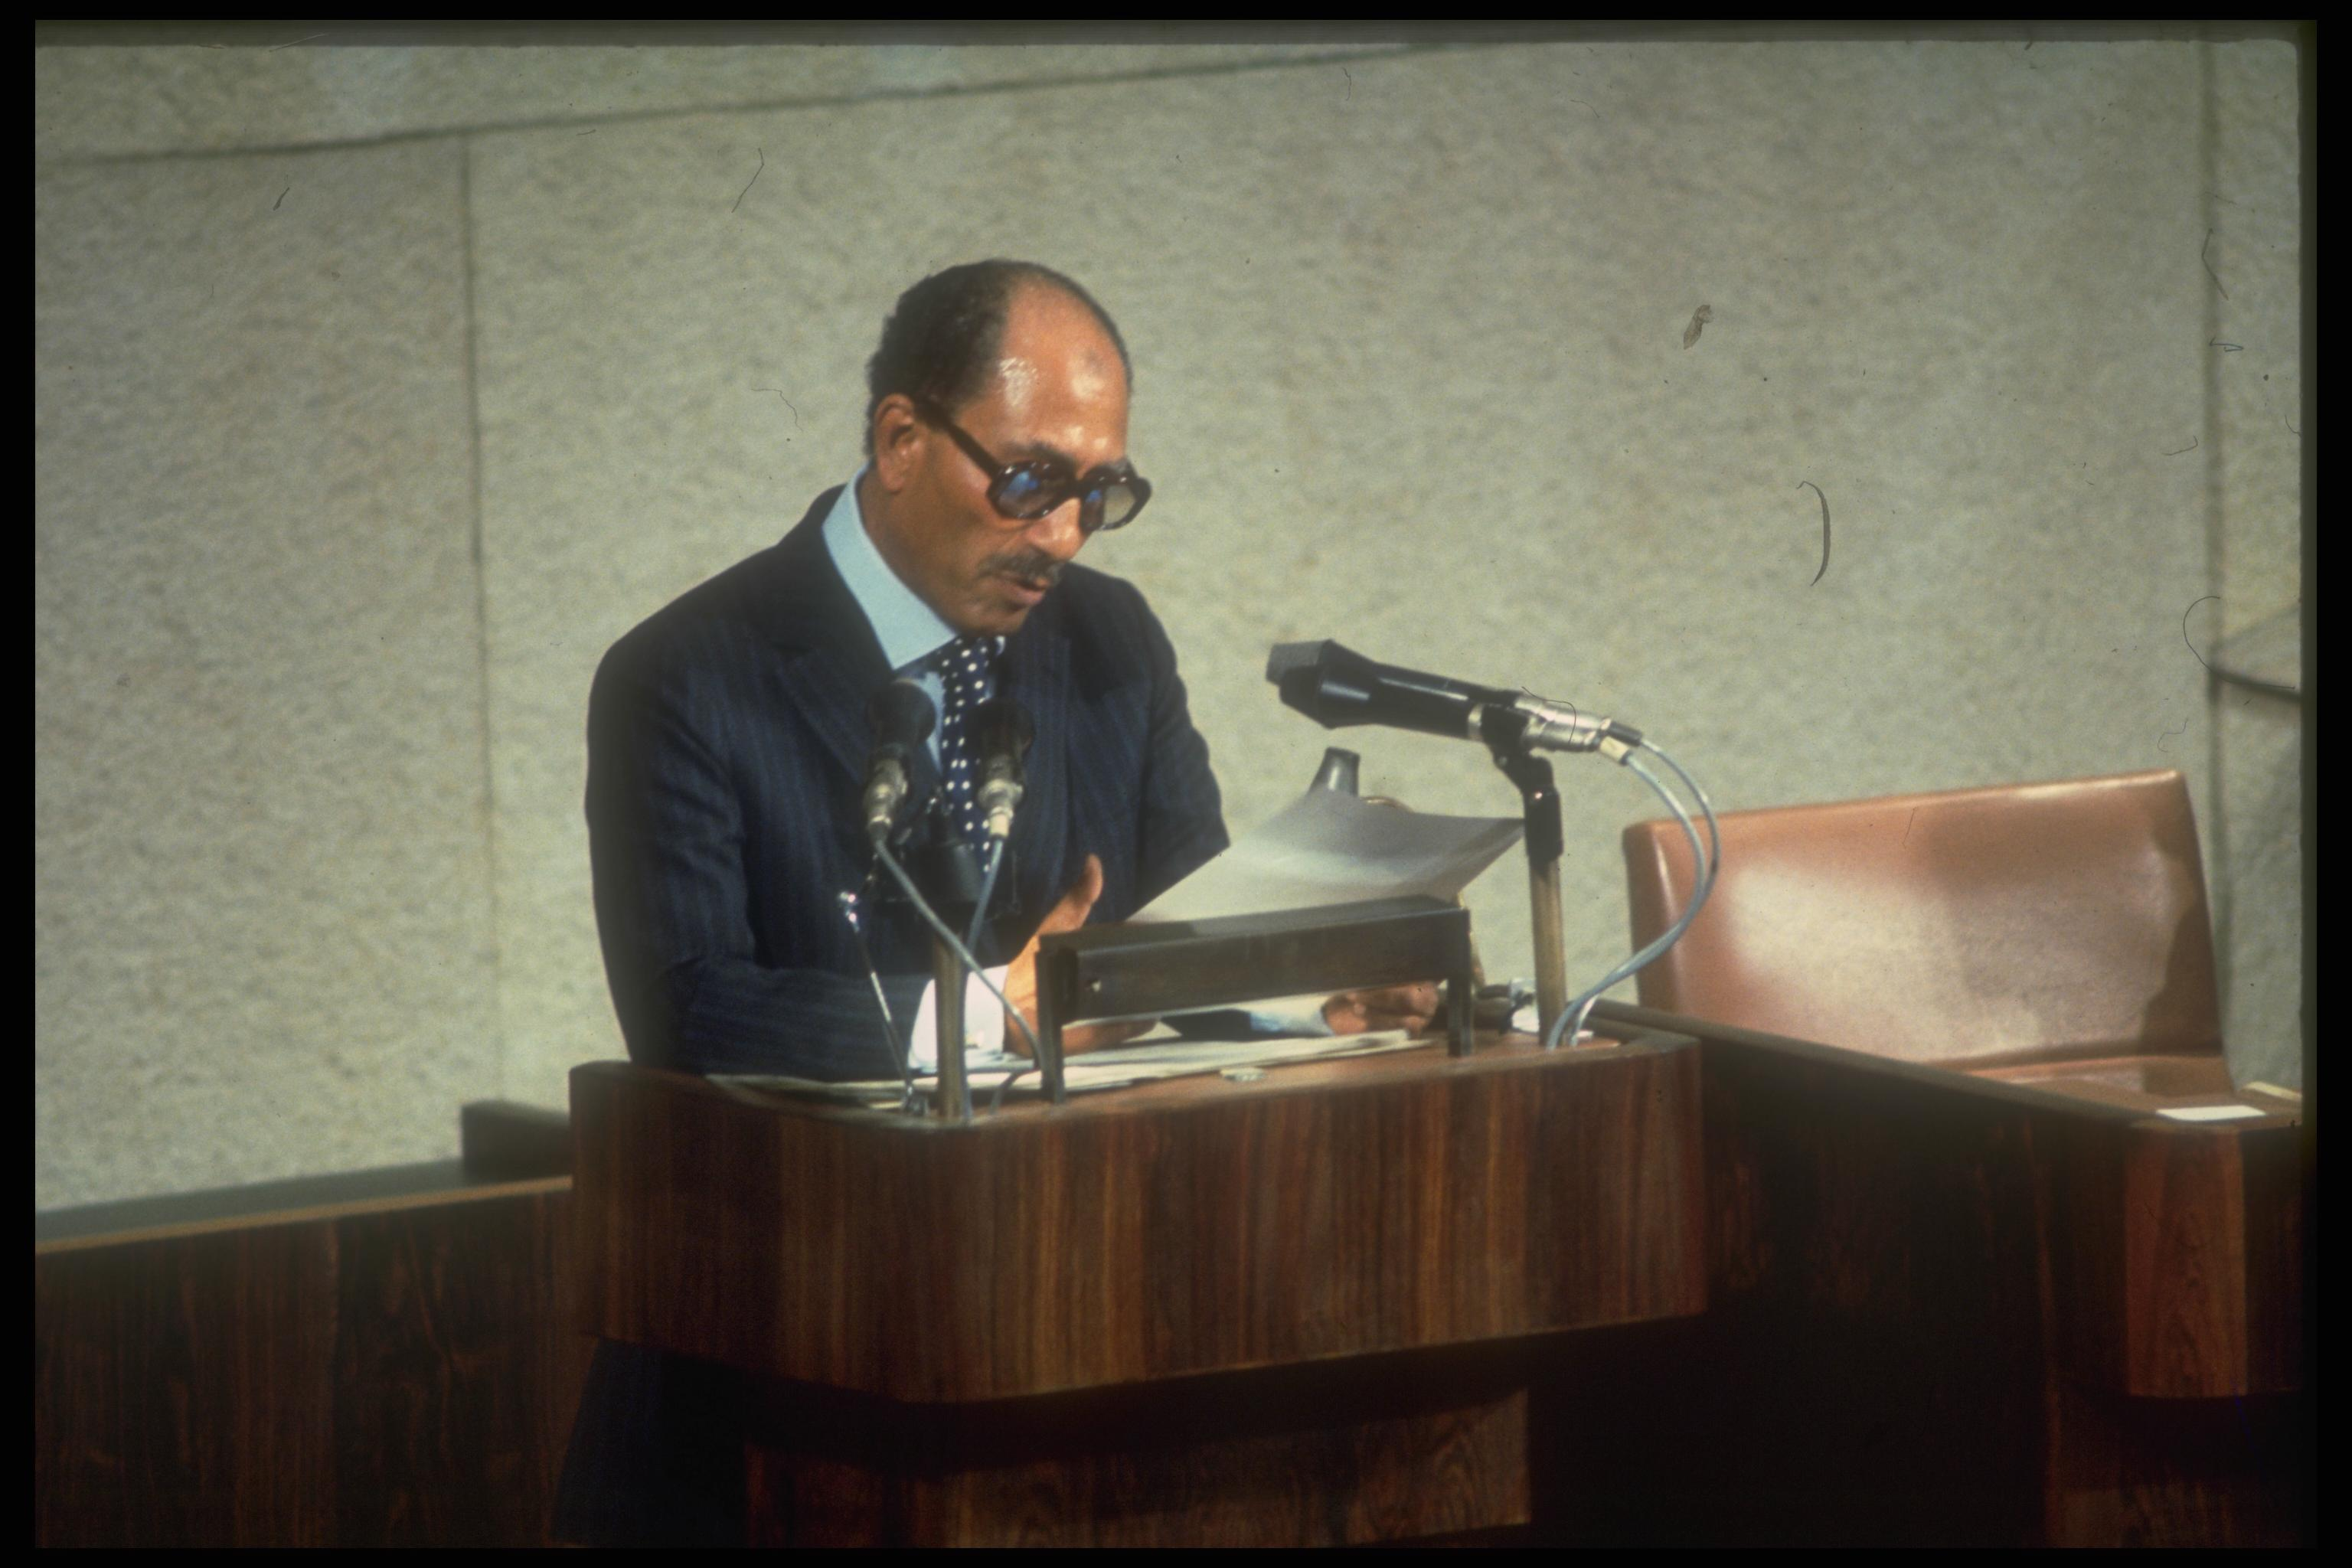 EGYPTIAN PRESIDENT ANWAR SADAT ADDRESSING THE KNESSET DURING HIS HISTORIC VISIT TO ISRAEL, JERUSALEM.